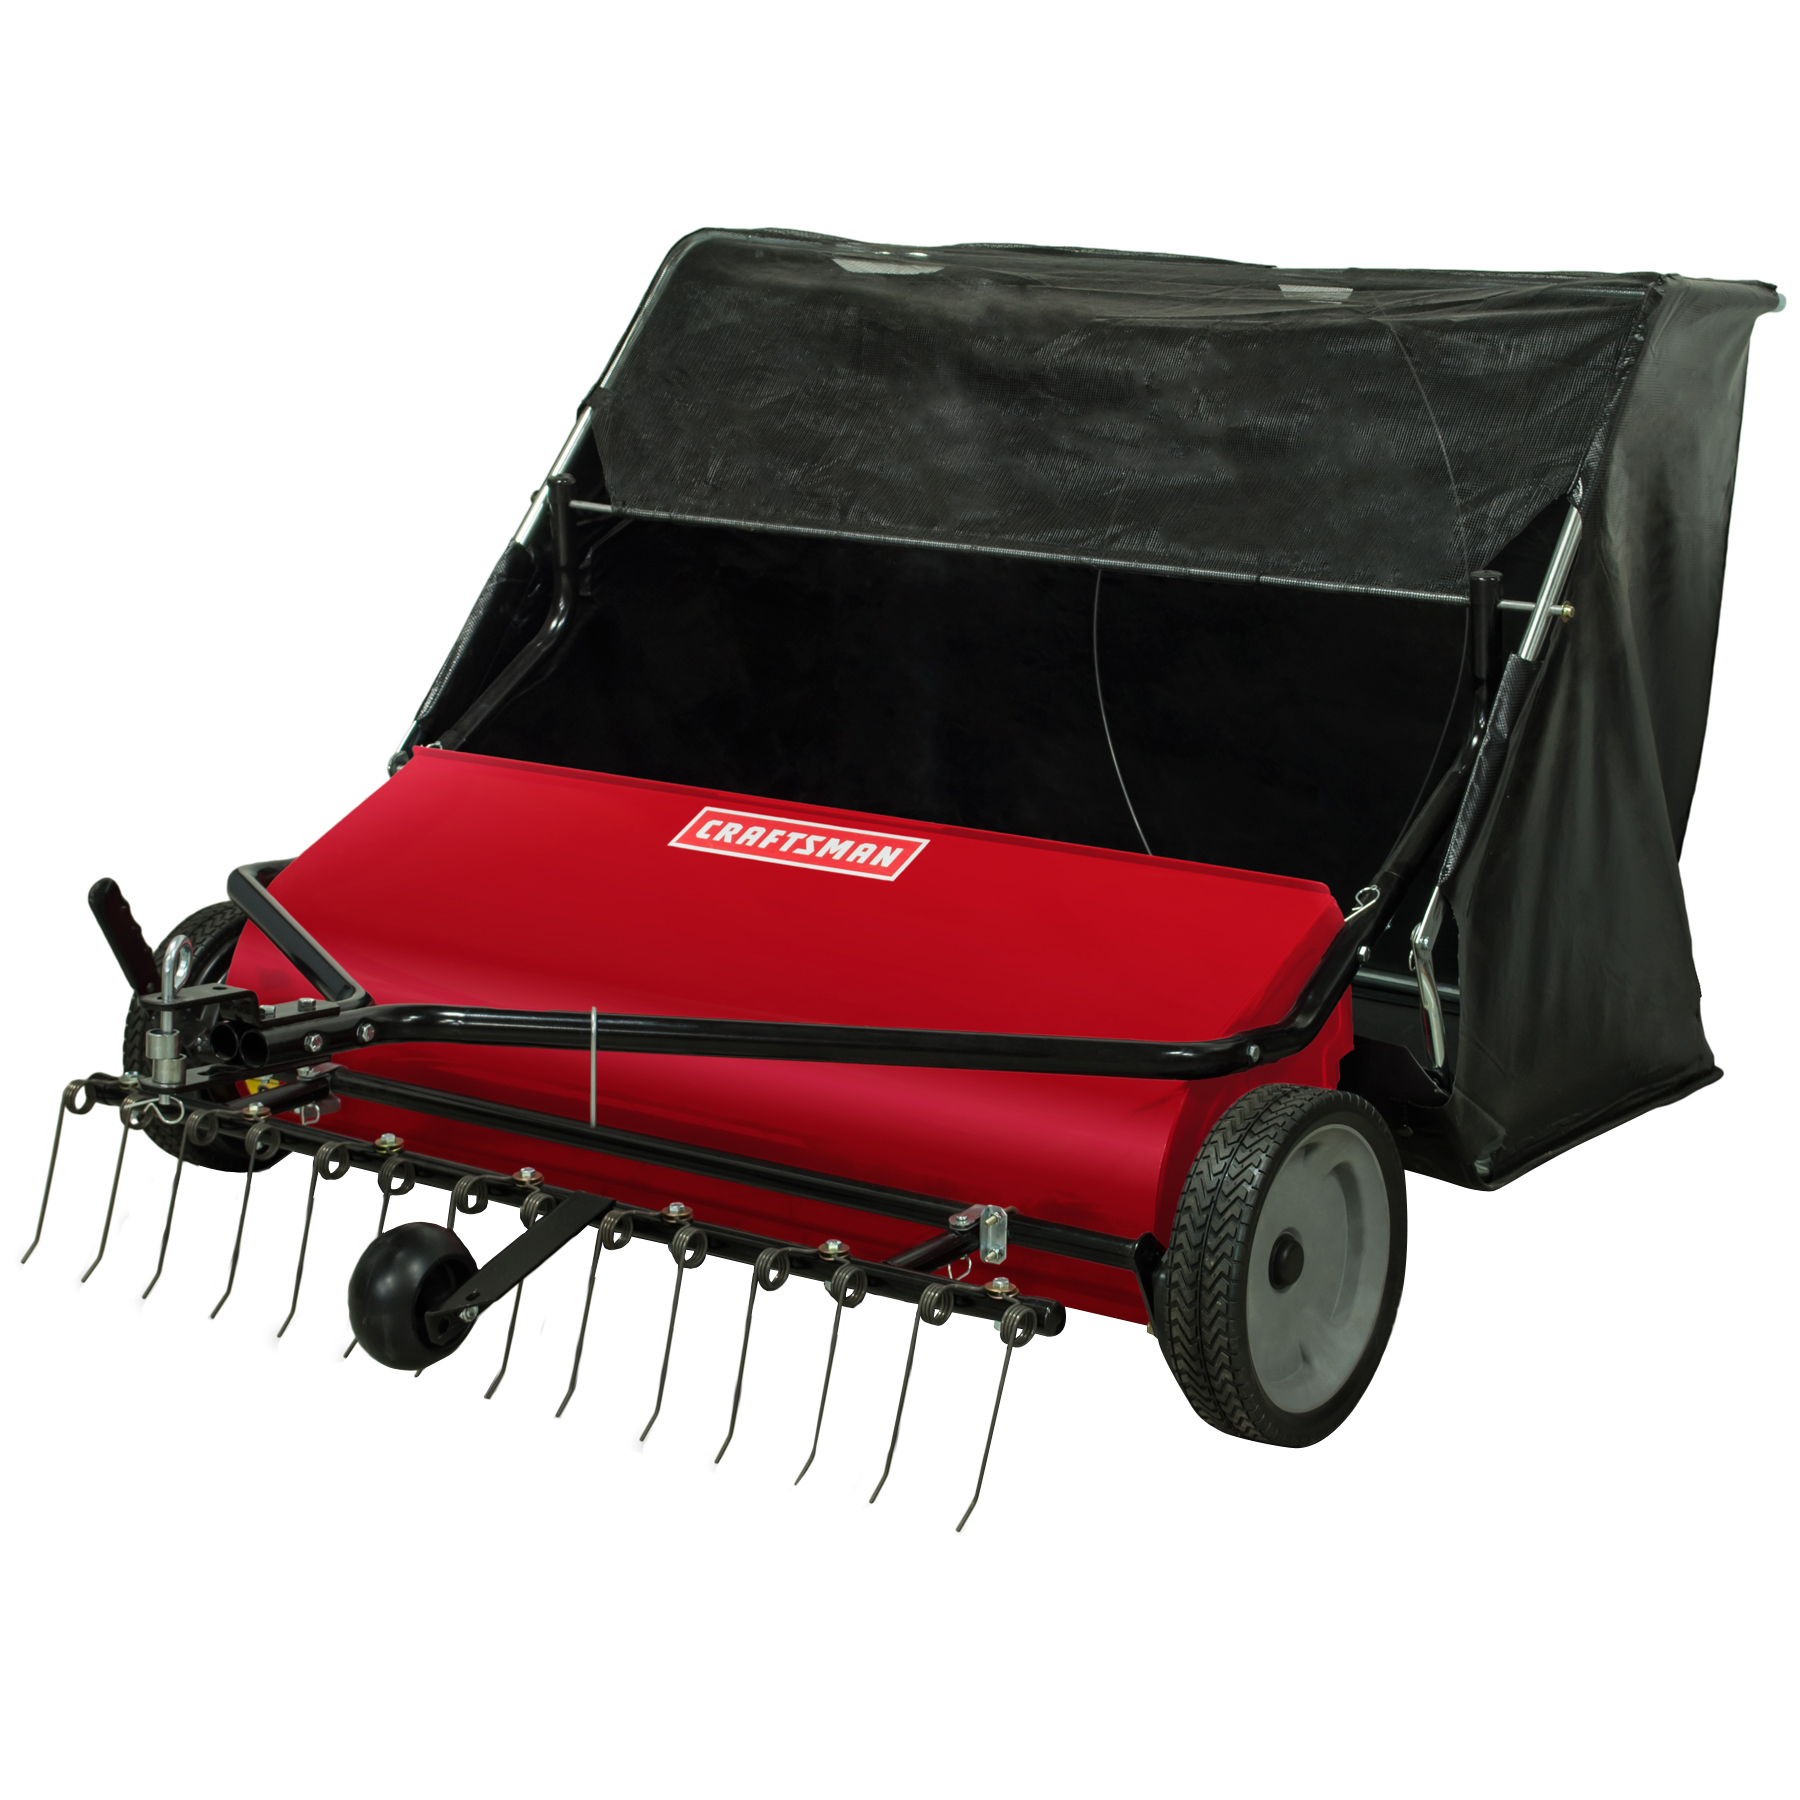 Craftsman 42 In. High Speed Sweeper